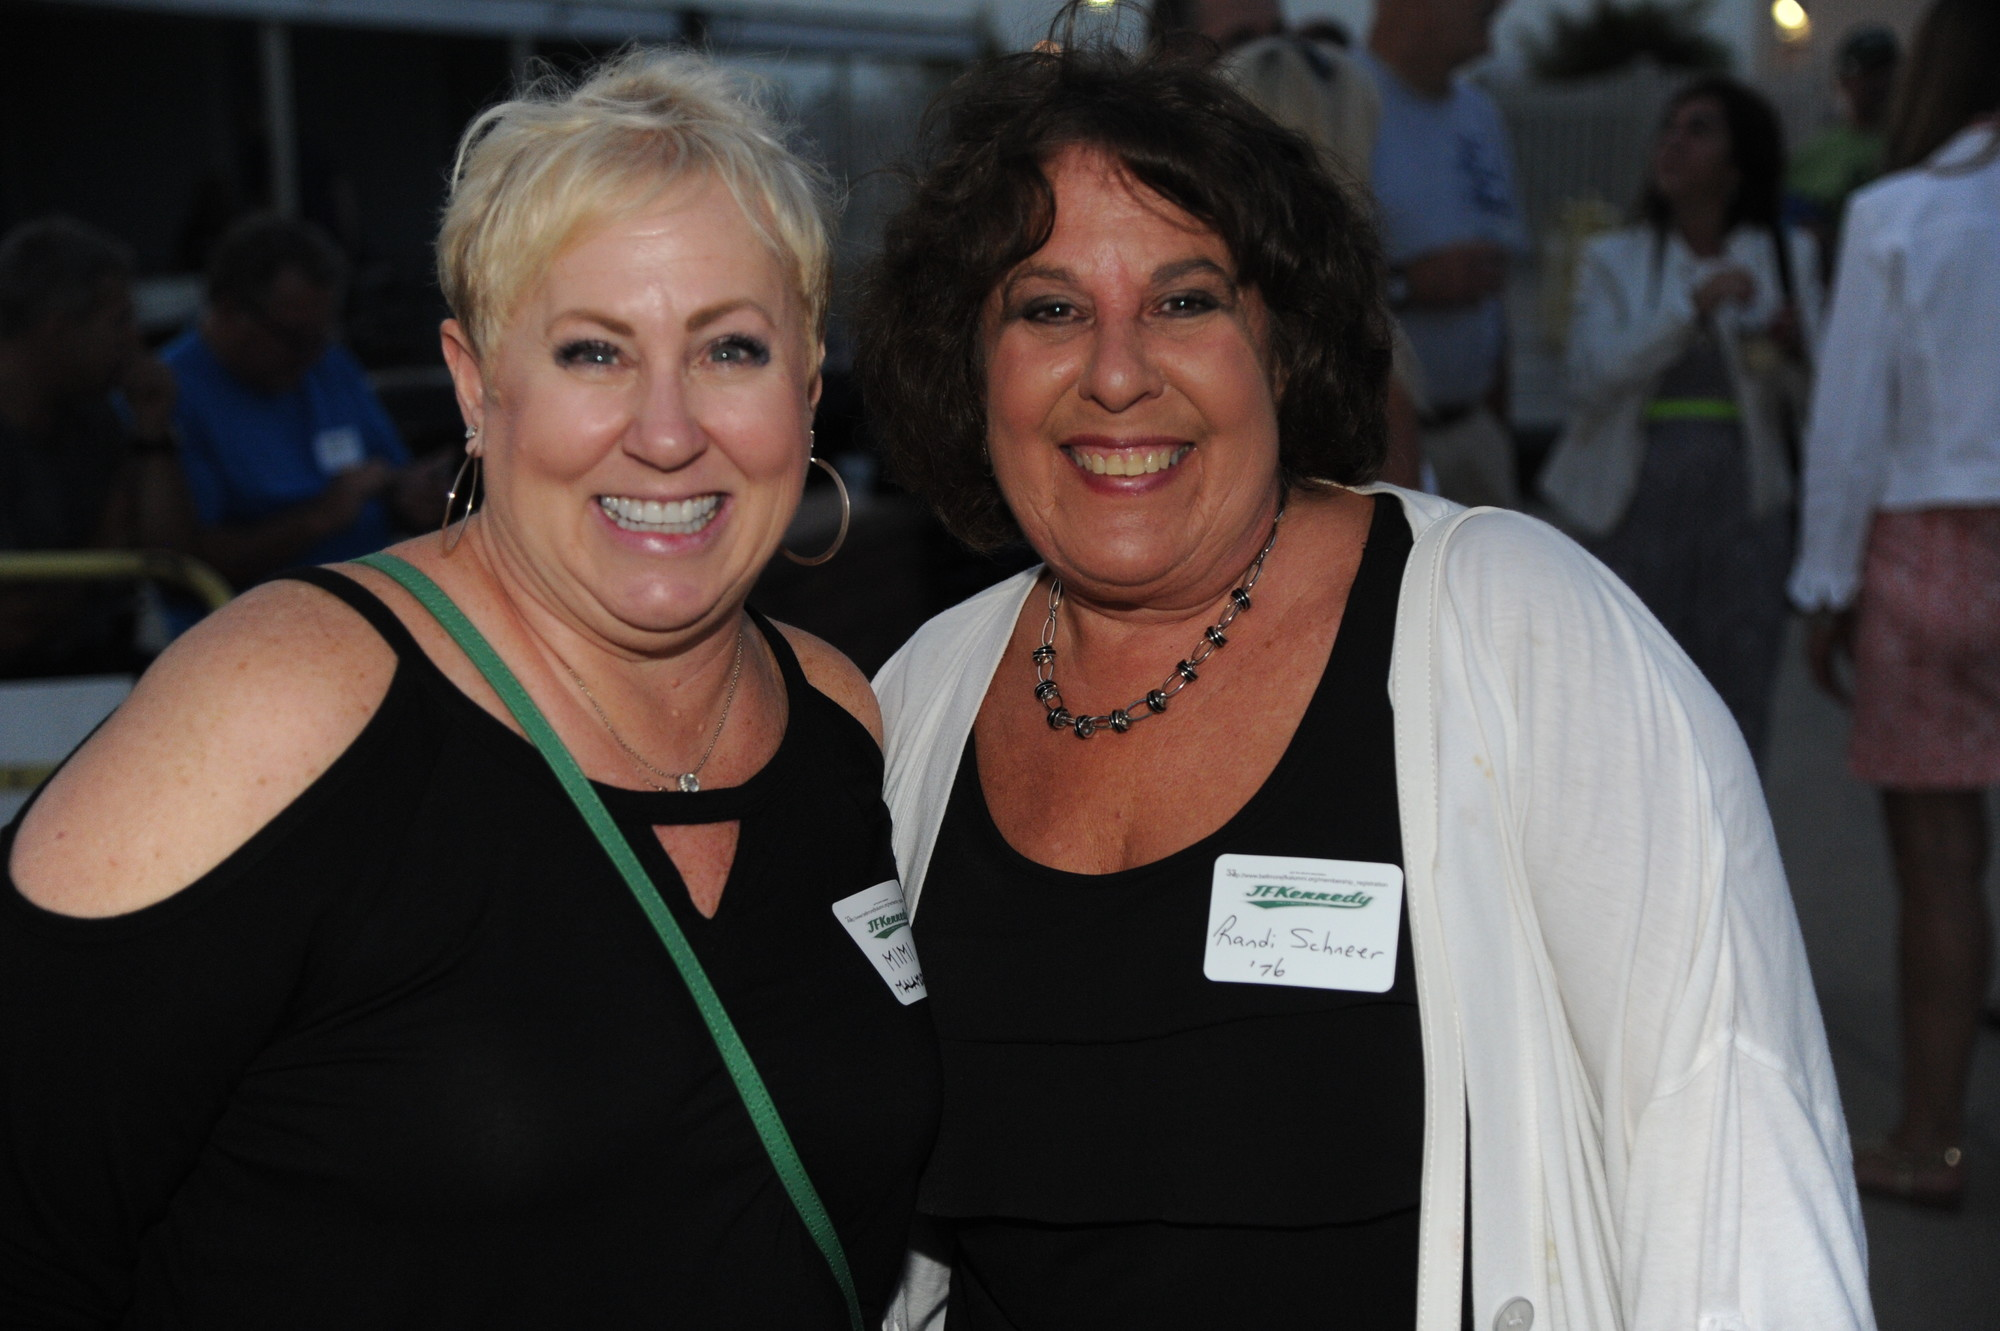 Mimi Malamud (class of 1975) and Randi Schneer (class of 1976) were some of the Kennedy graduates to attend the event.